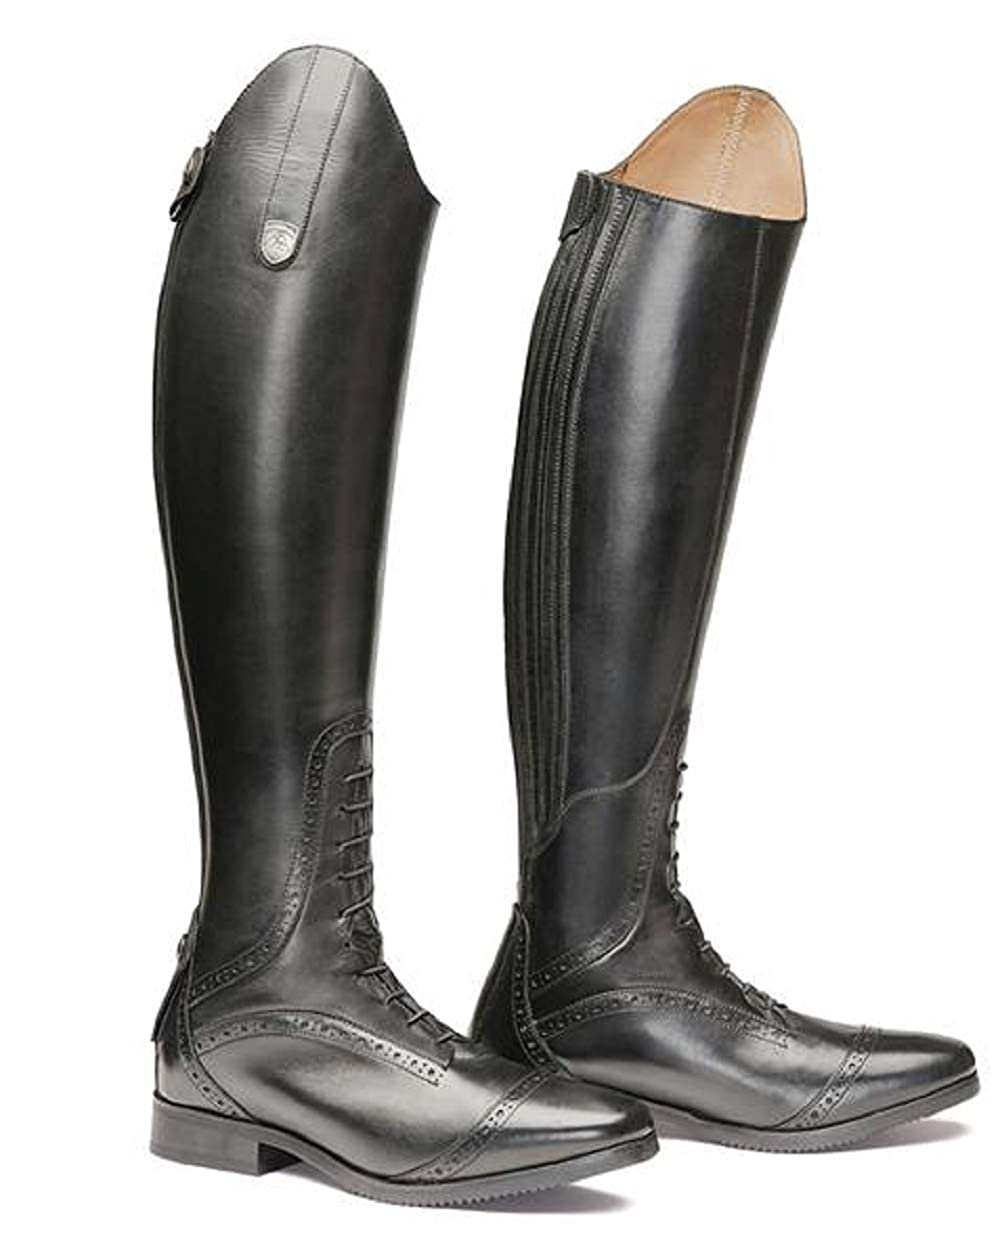 Mountain Horse Superior High Rider Damen Reitstiefel   schwarz   39   T50 N33-36